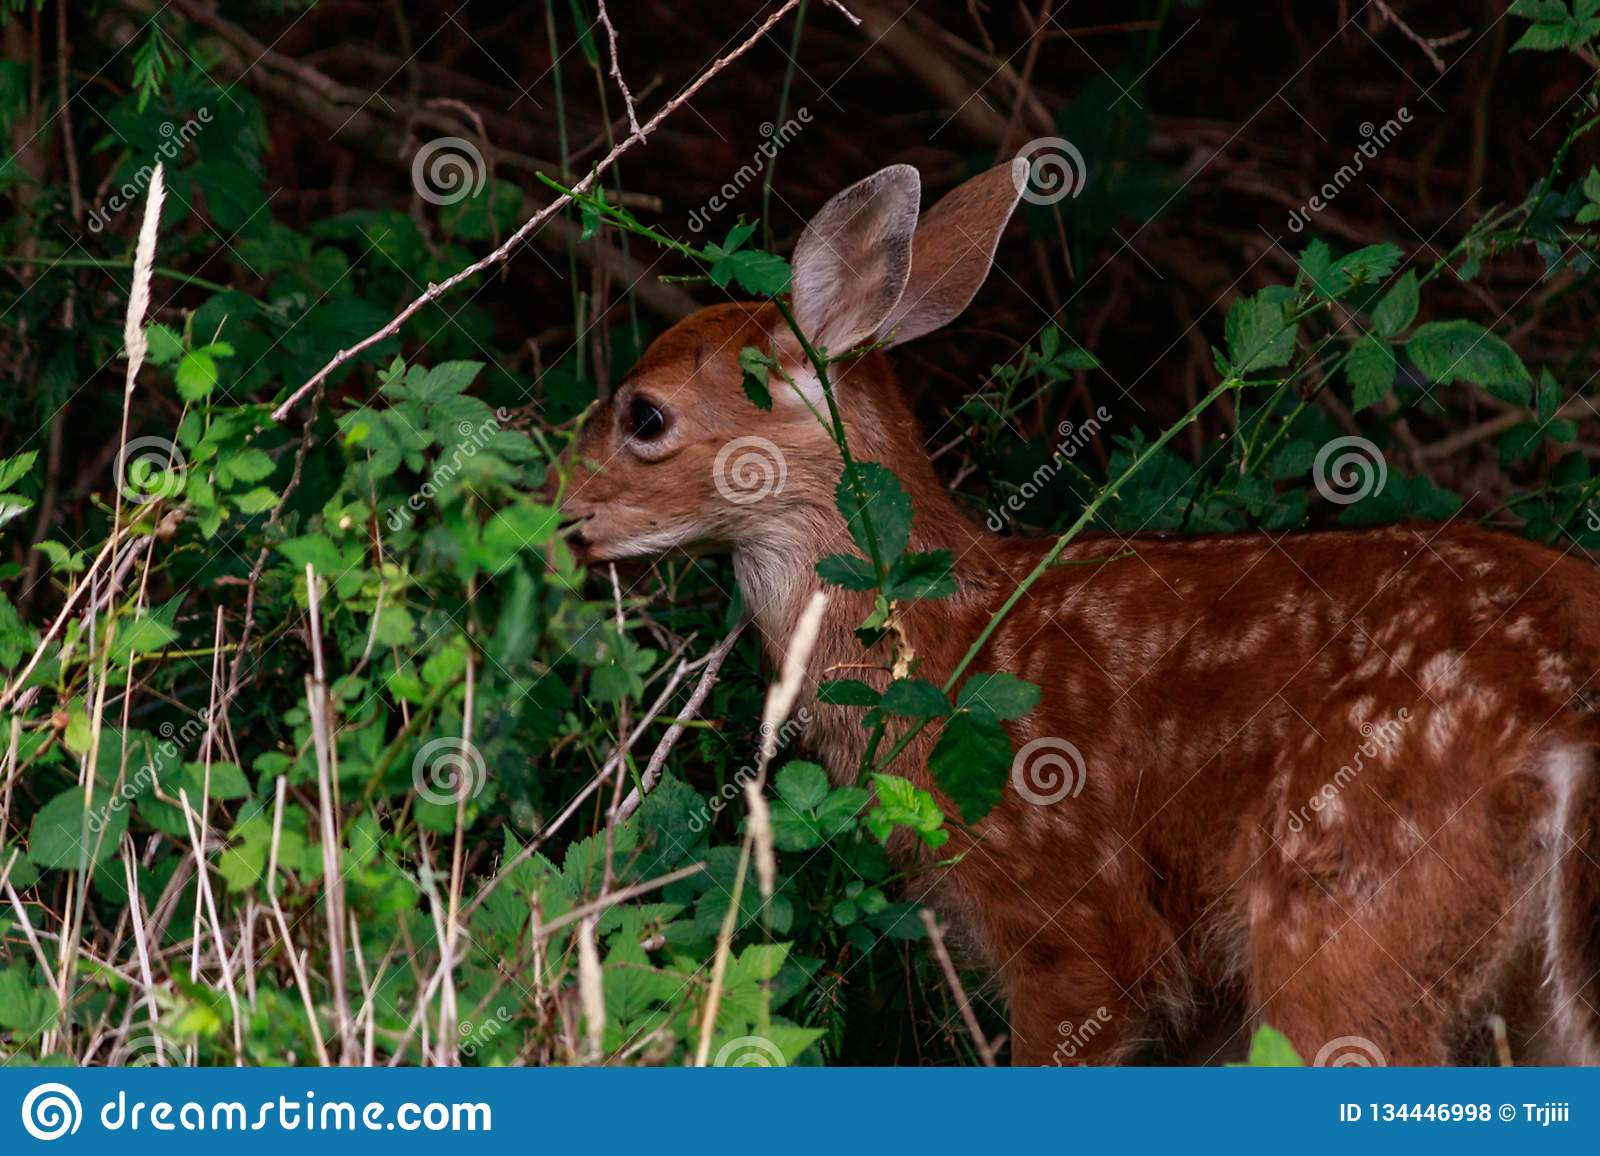 fawn behind tall grass and bushes eating in forest